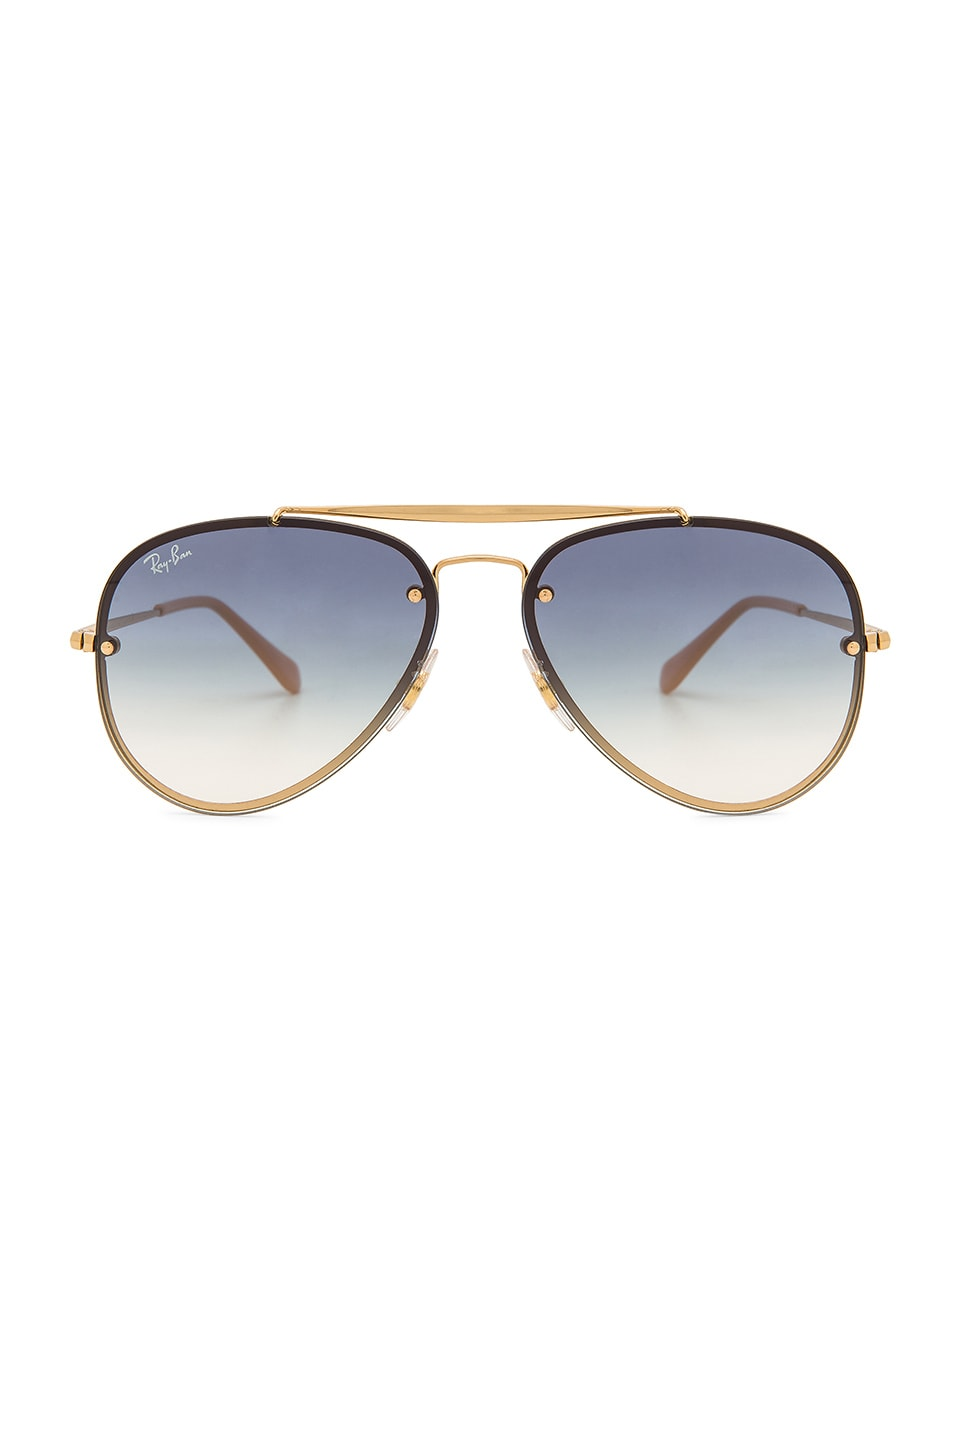 Ray-Ban Blaze Aviator in Gold & Light Blue Gradient